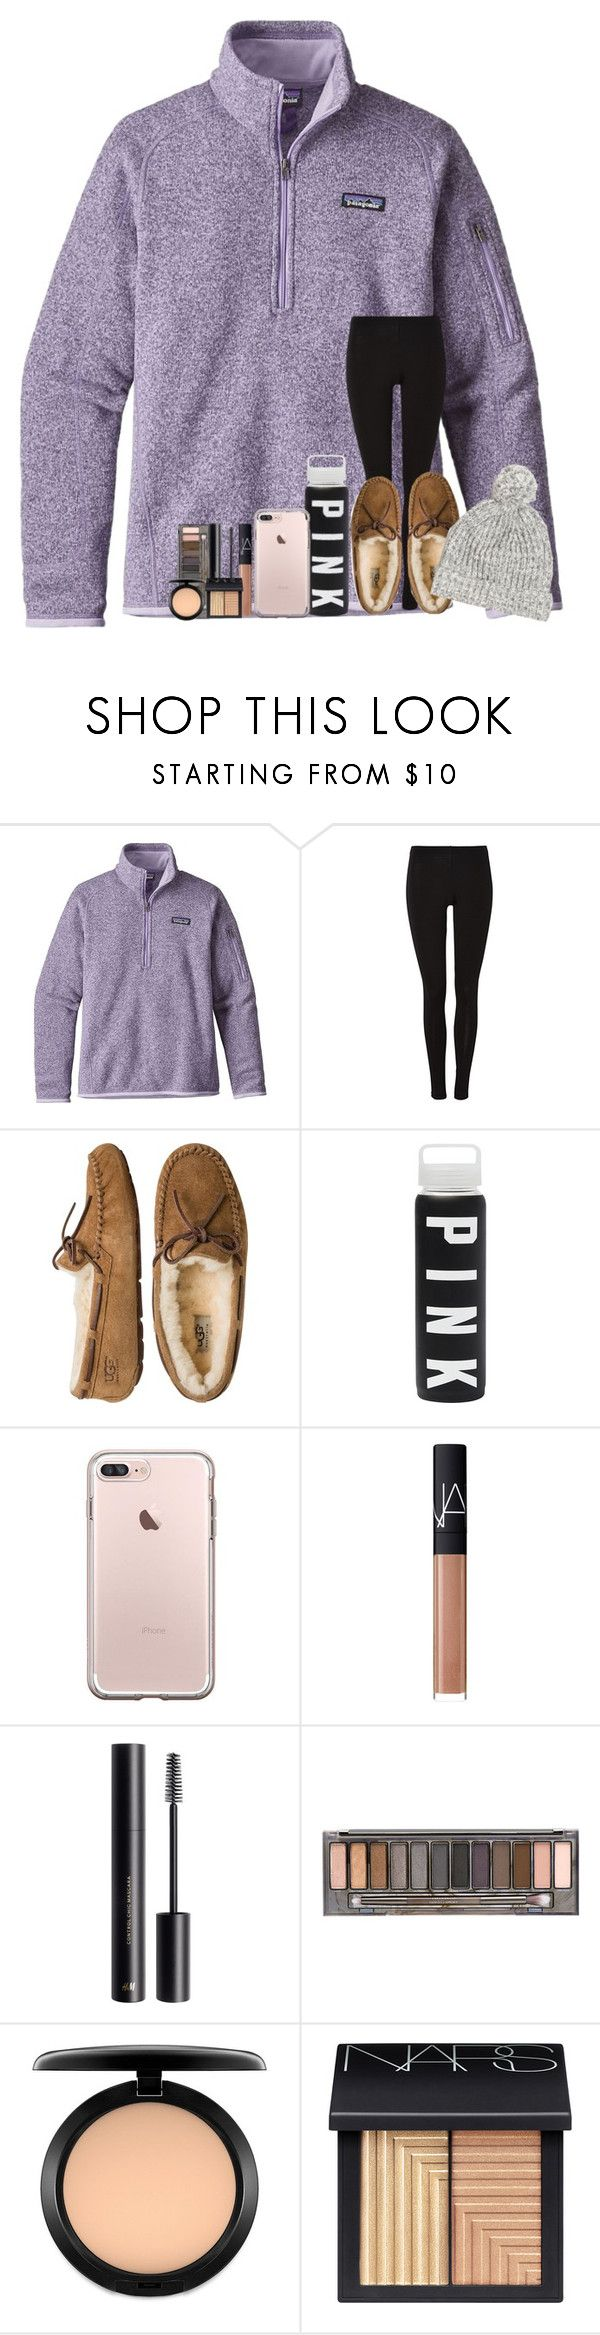 """""""Heading To The Mountains!🎿❄️❤️"""" by theafergusma ❤ liked on Polyvore featuring Patagonia, UGG Australia, NARS Cosmetics, H&M, Urban Decay, MAC Cosmetics and J.Crew"""